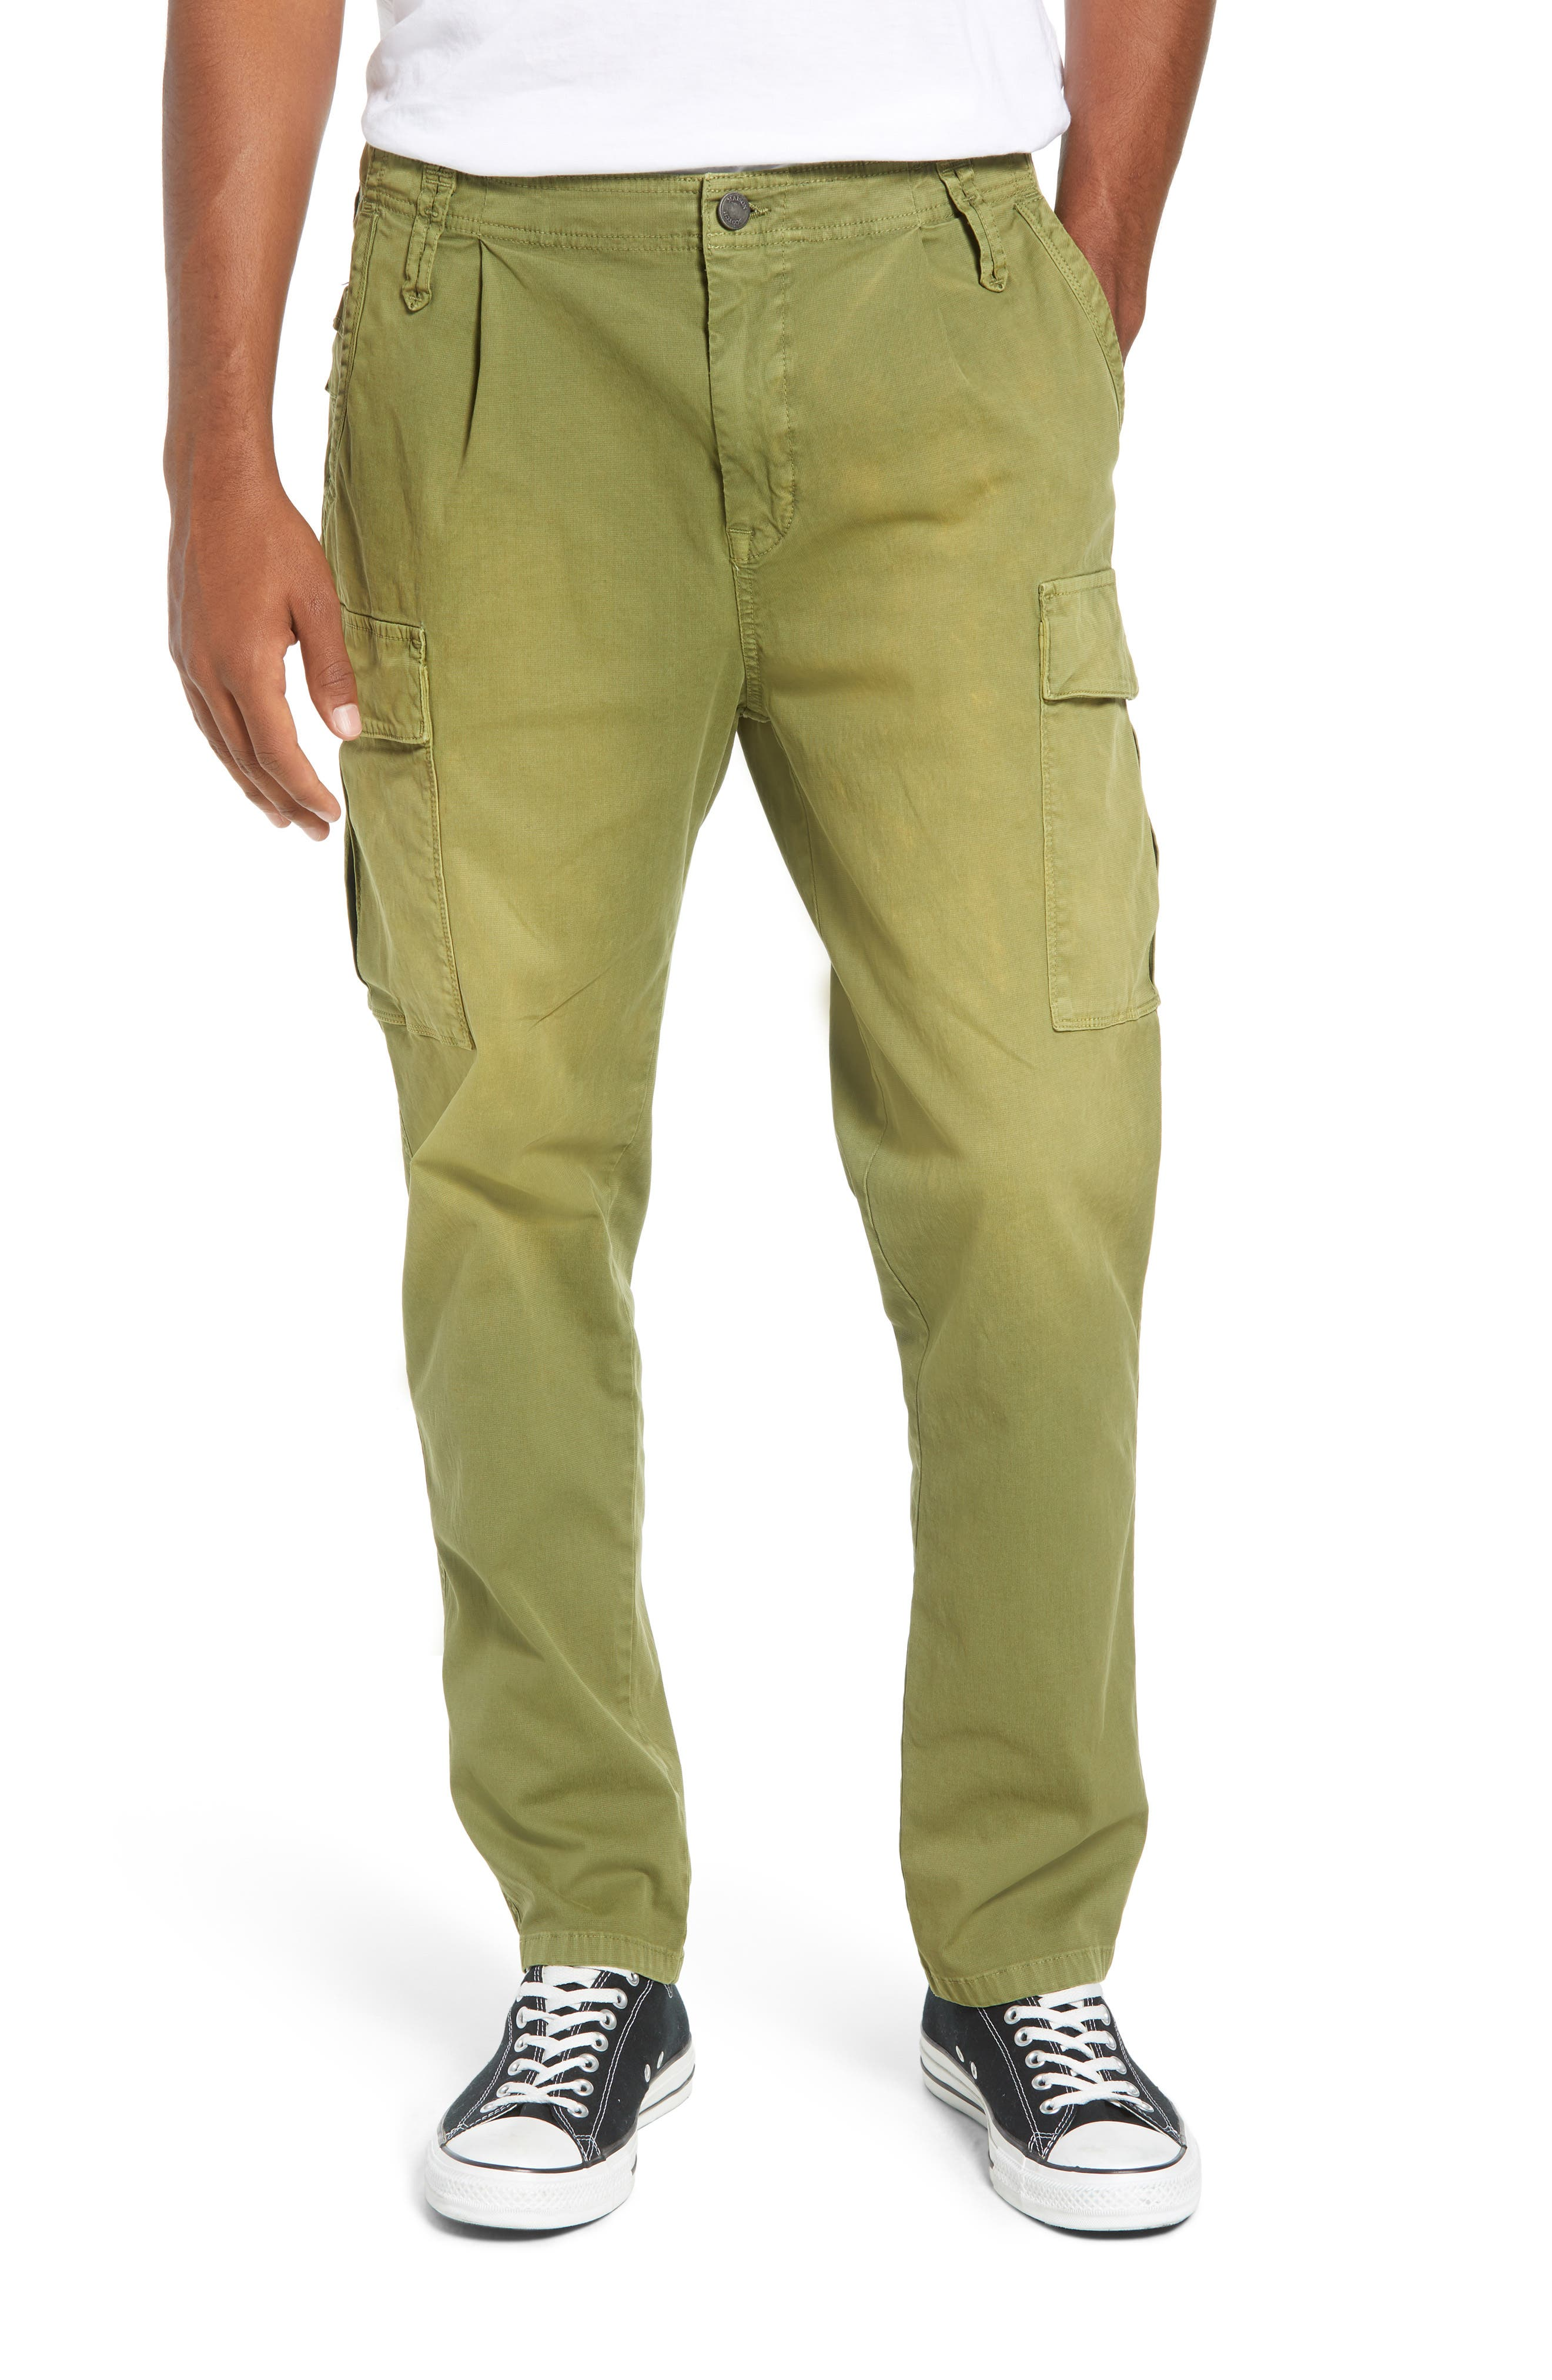 Scotch & Soda Loose Taper Fit Washed Cargo Pants, Green